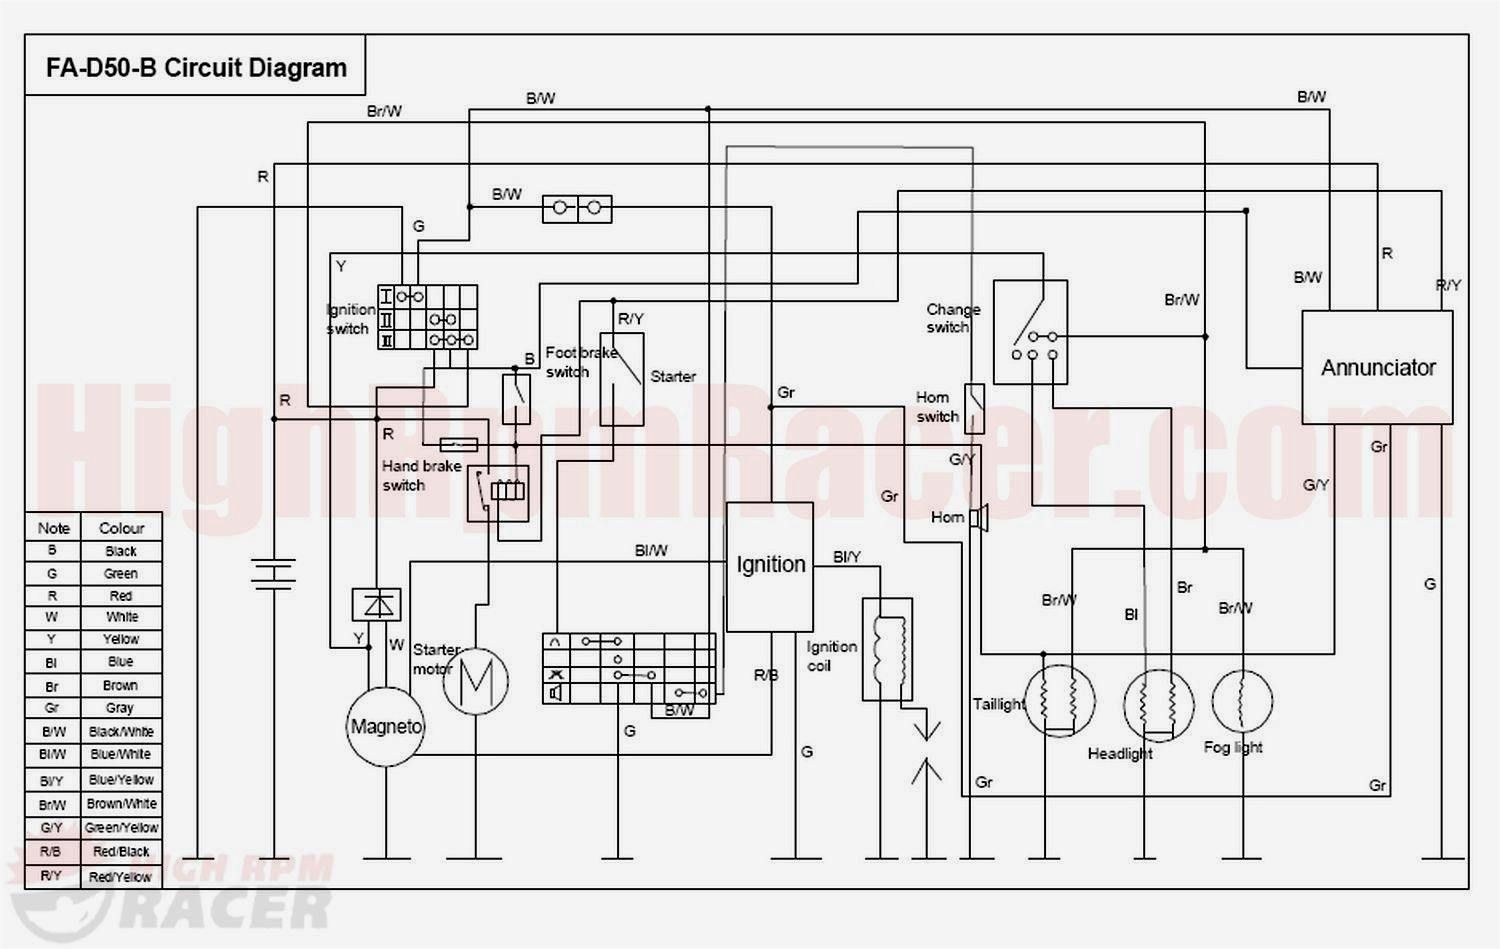 110 Loncin Wiring Diagram Wiring Diagrams Box Chinese ATV Wiring Diagrams  2007 Buyang 110 Atv Wiring Diagram. Source. 500 jaguar ...